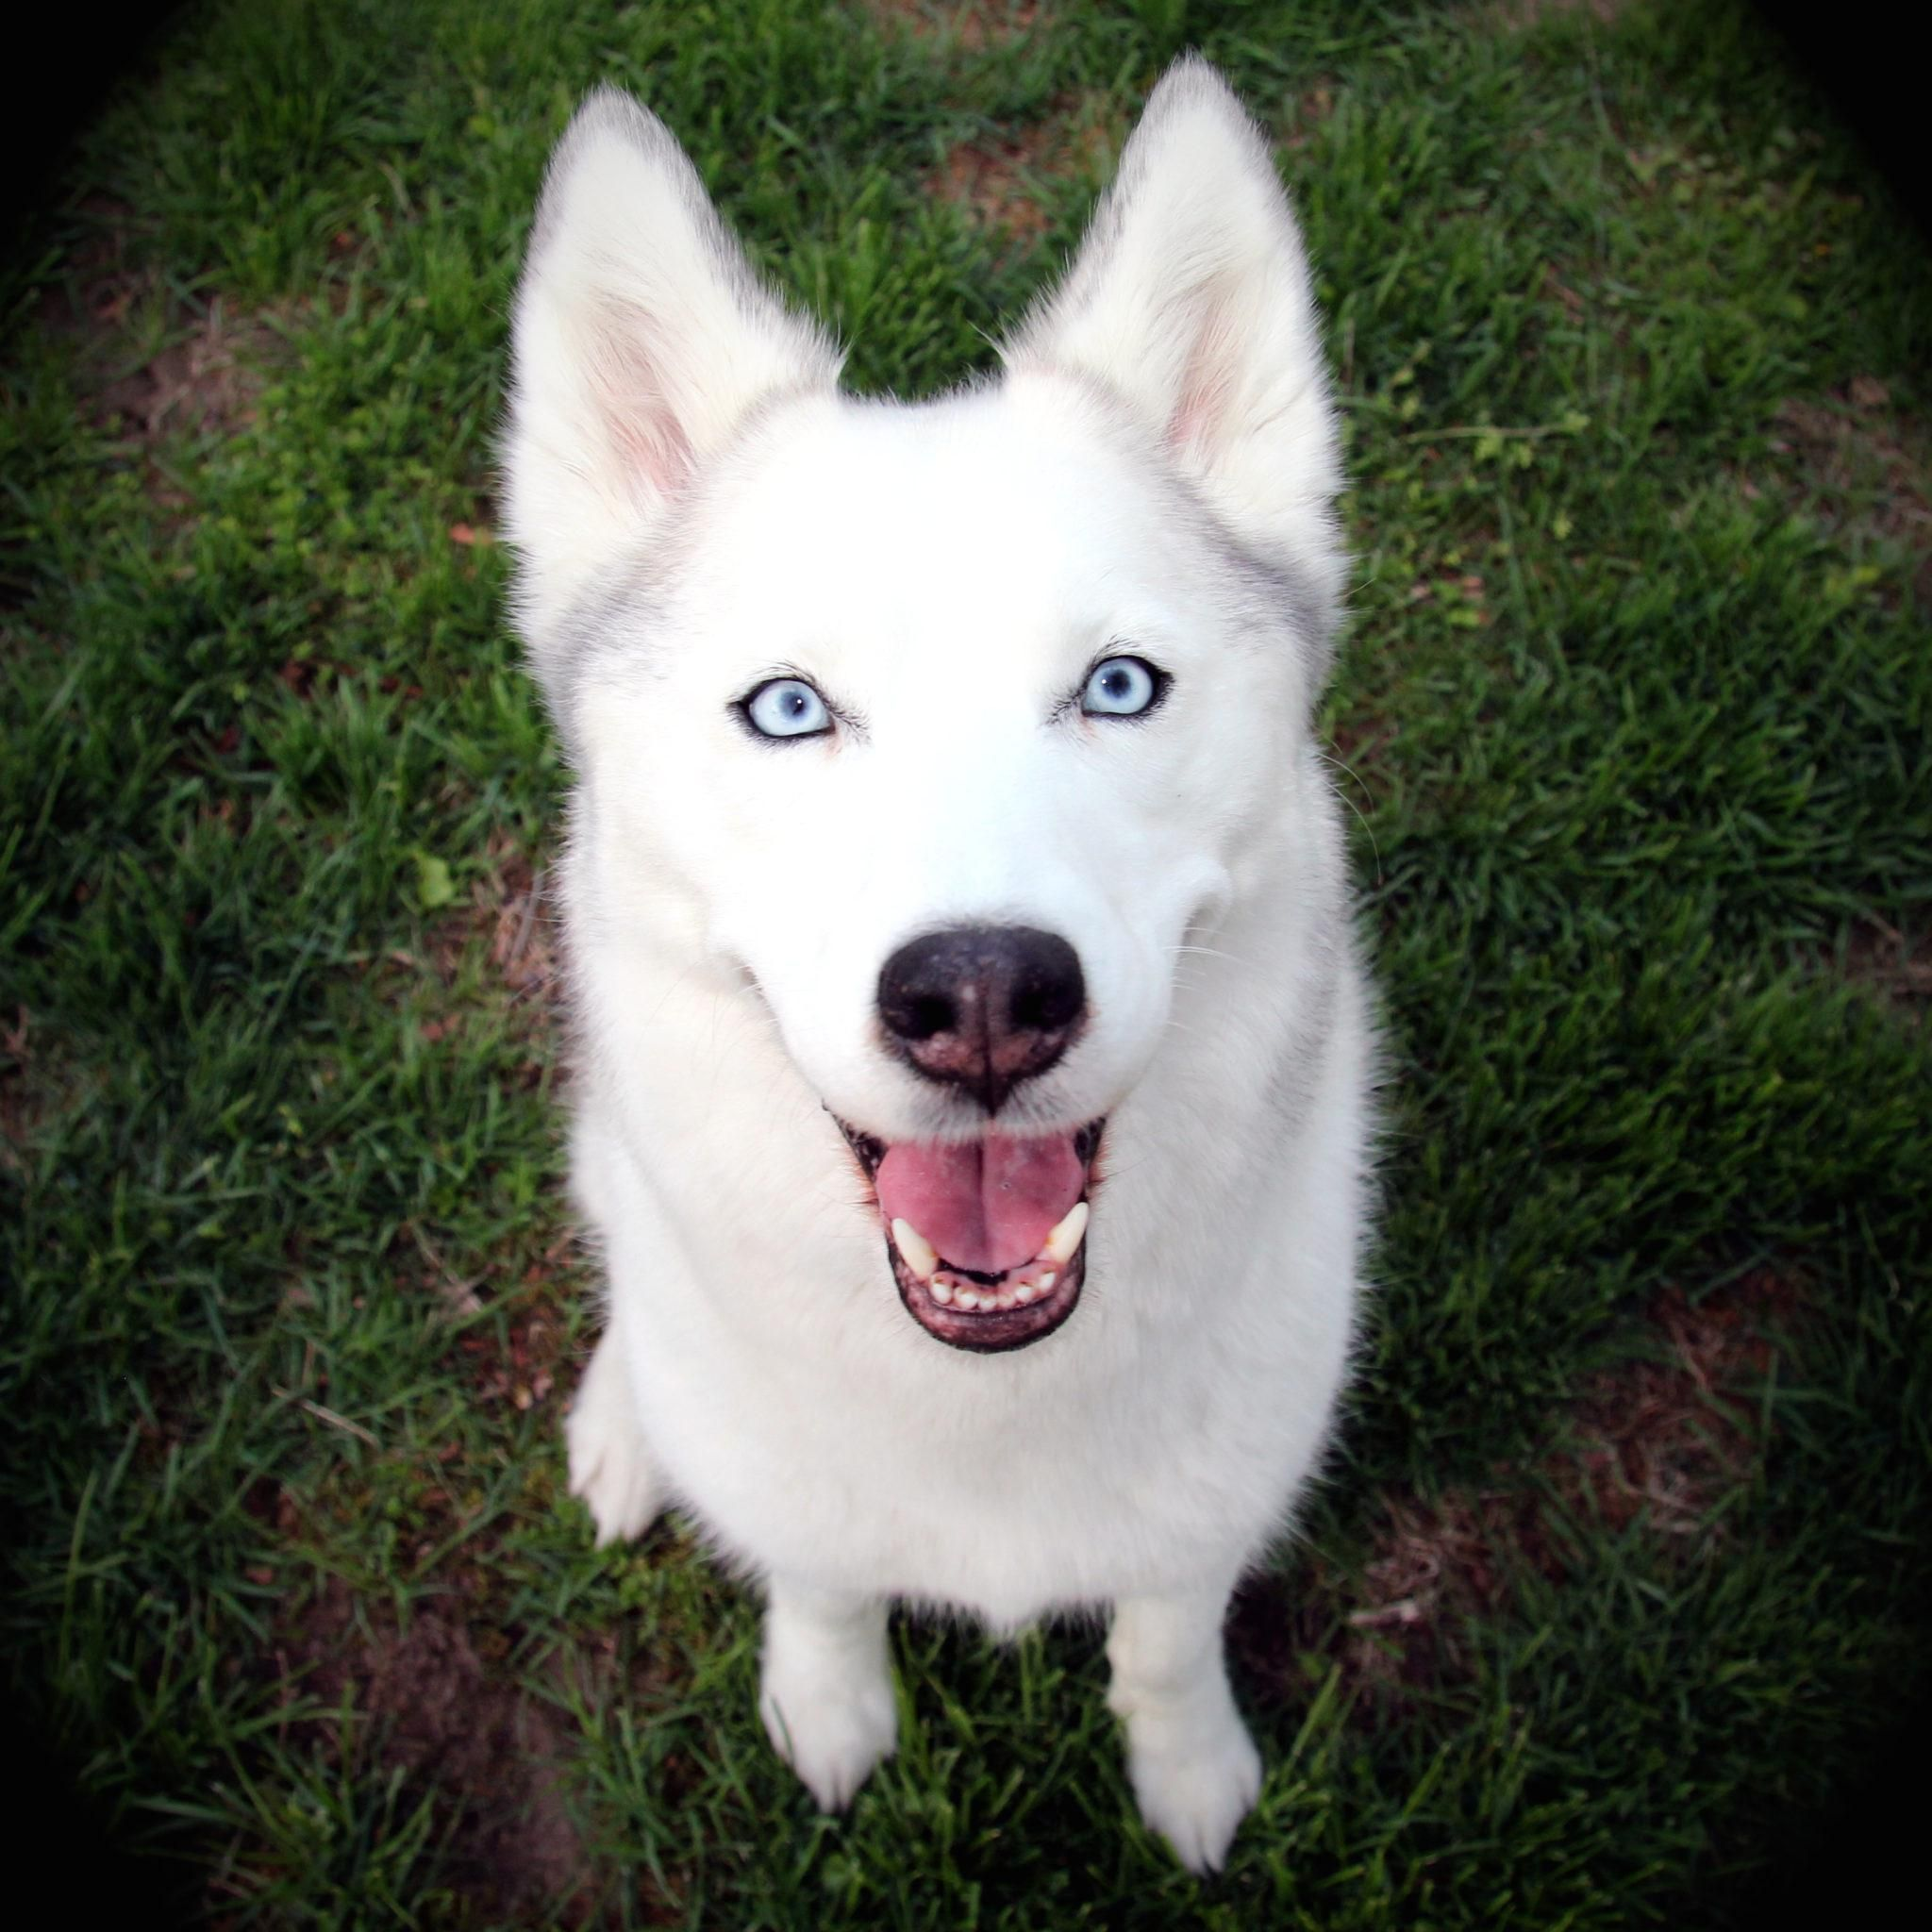 Husky Mix Breed Dogs Dogs Puppies With Blue Eyes White Husky